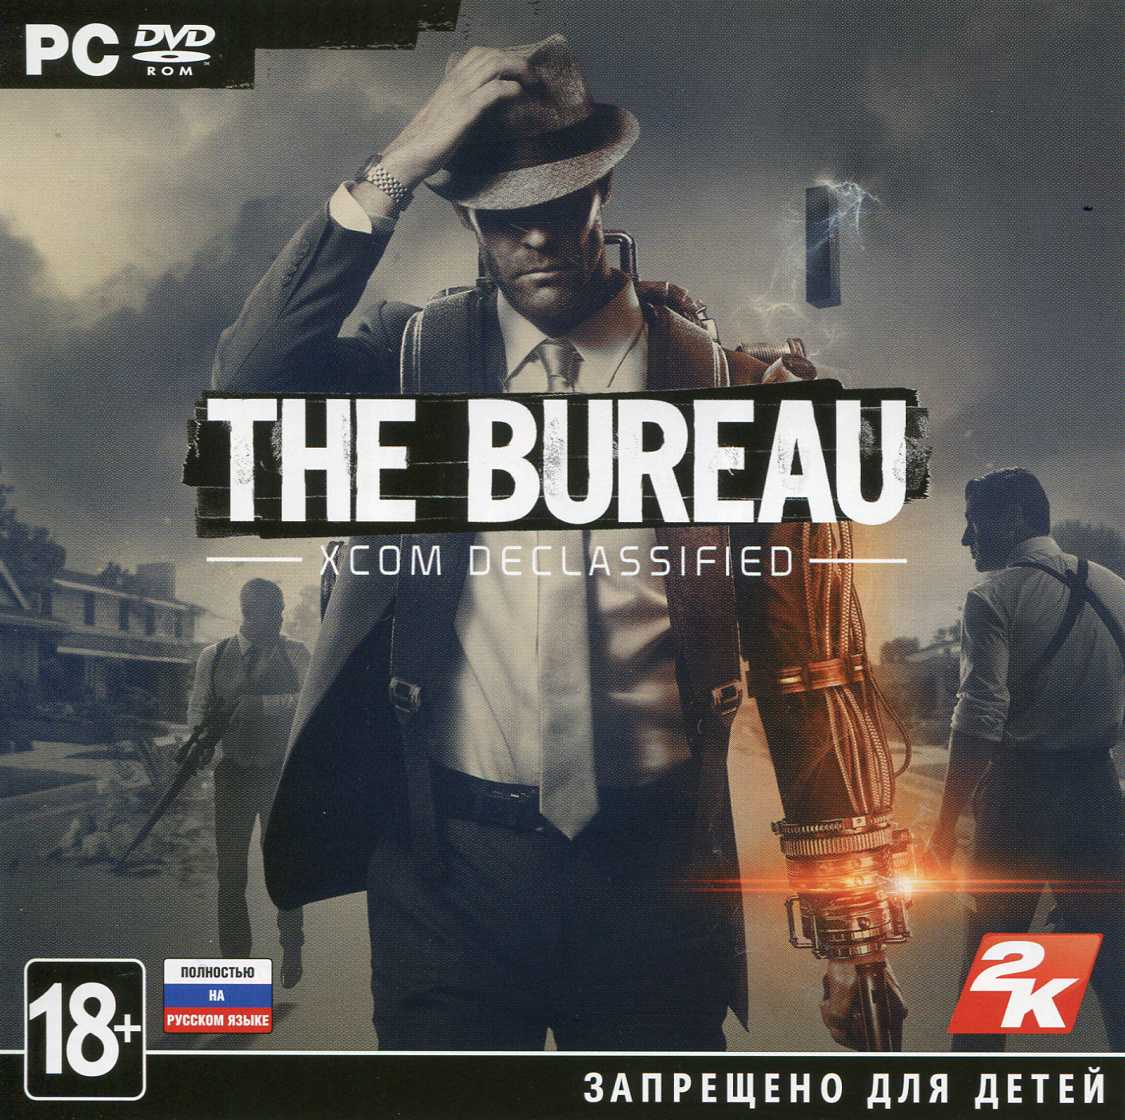 Buy the bureau xcom declassified activation key in steam and download - The bureau xcom declassified download ...